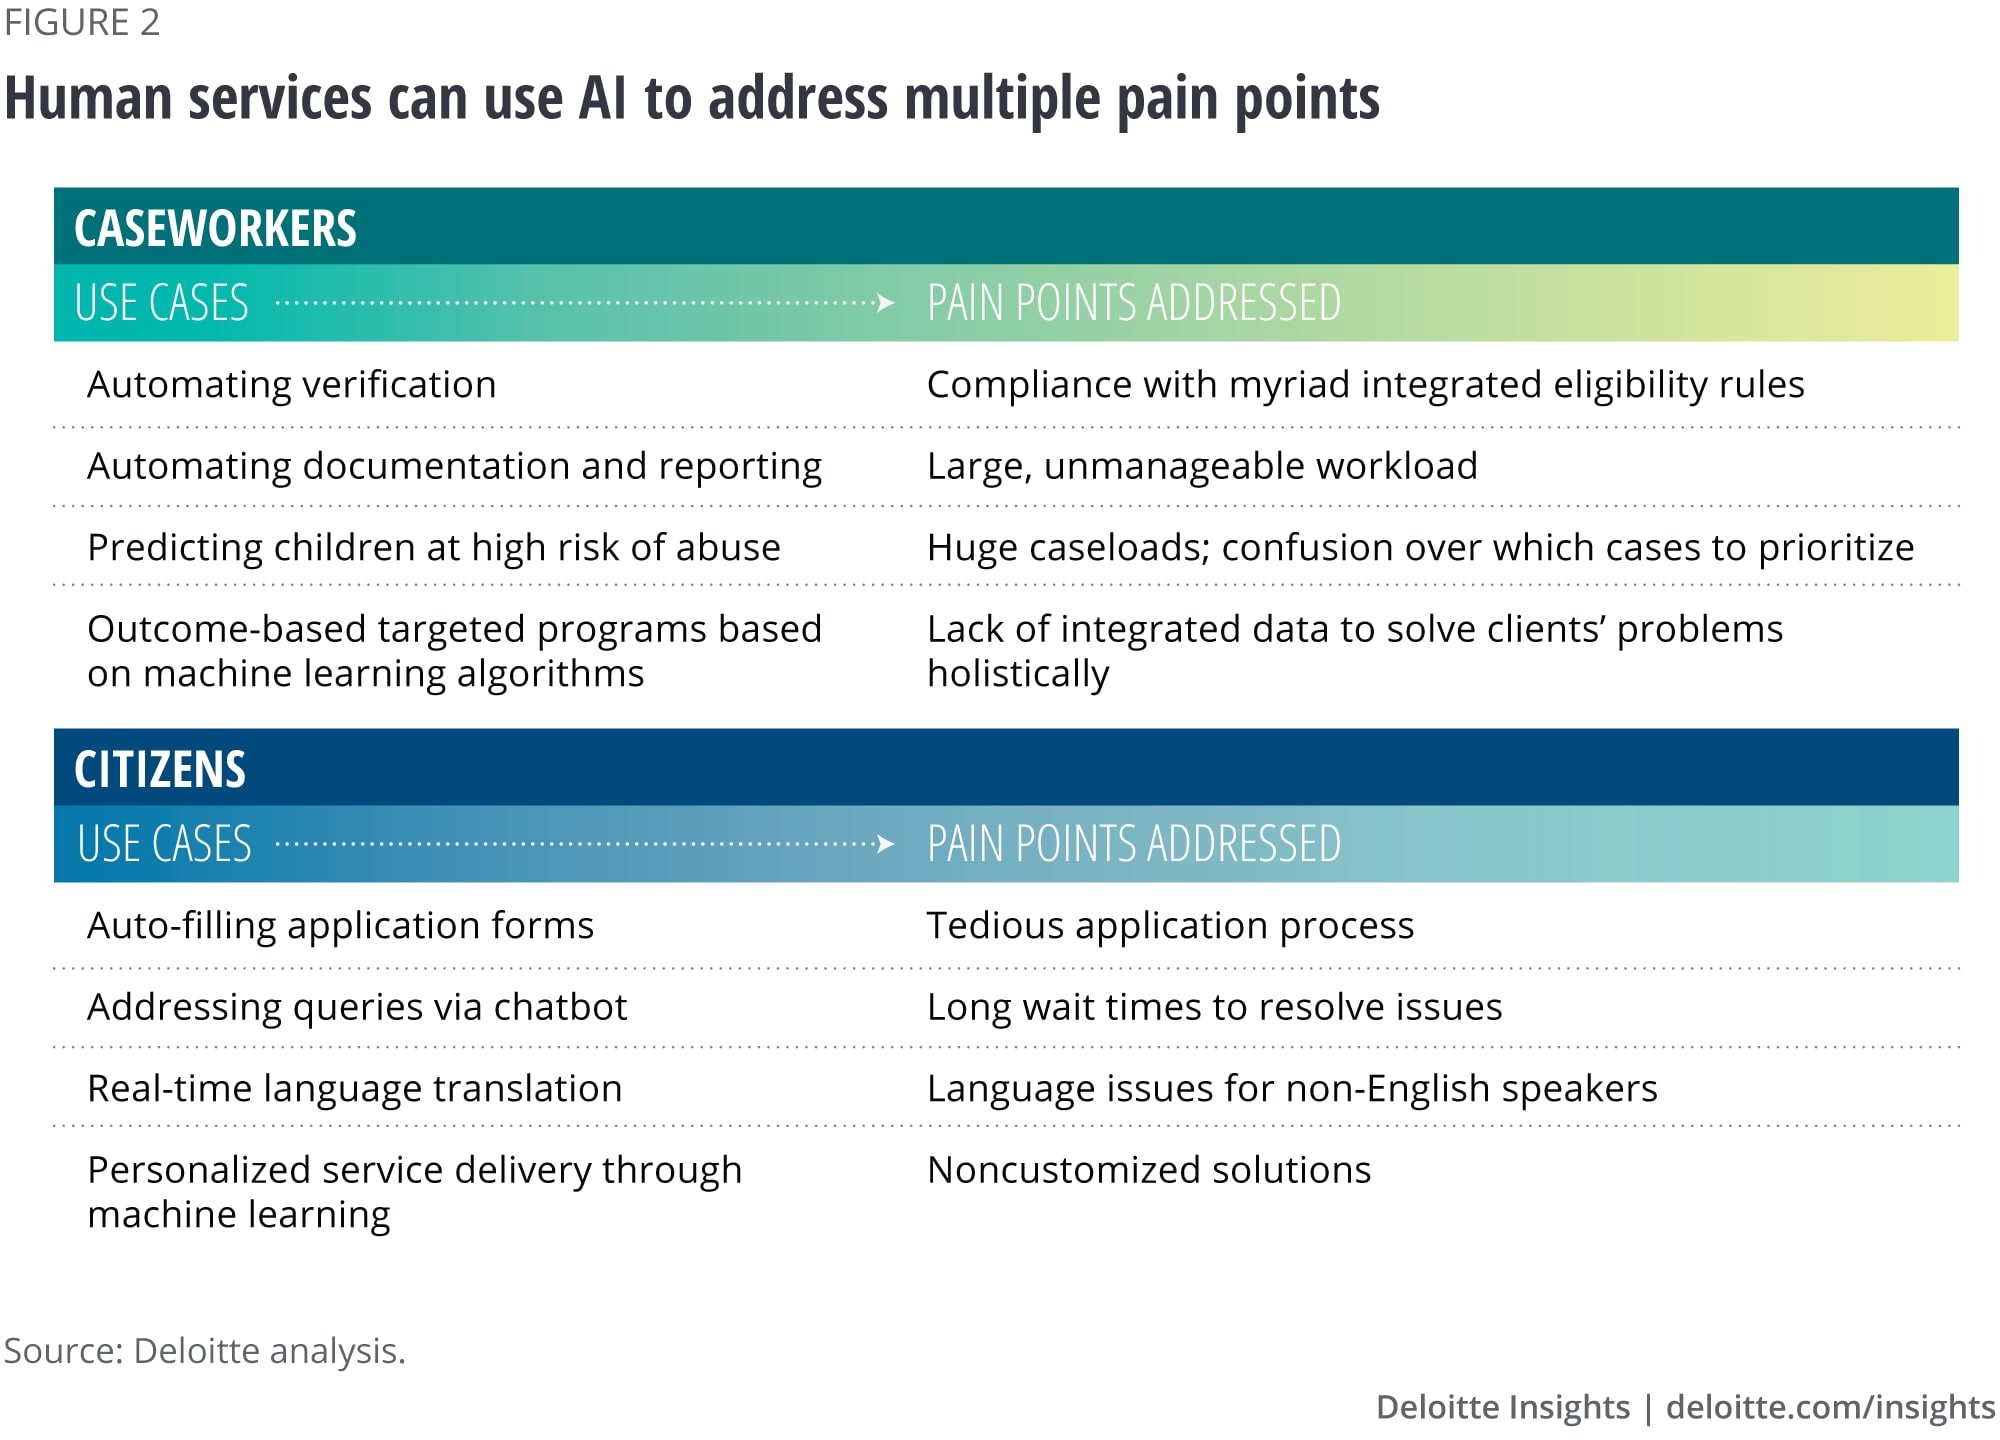 Human services can use AI to address multiple pain points